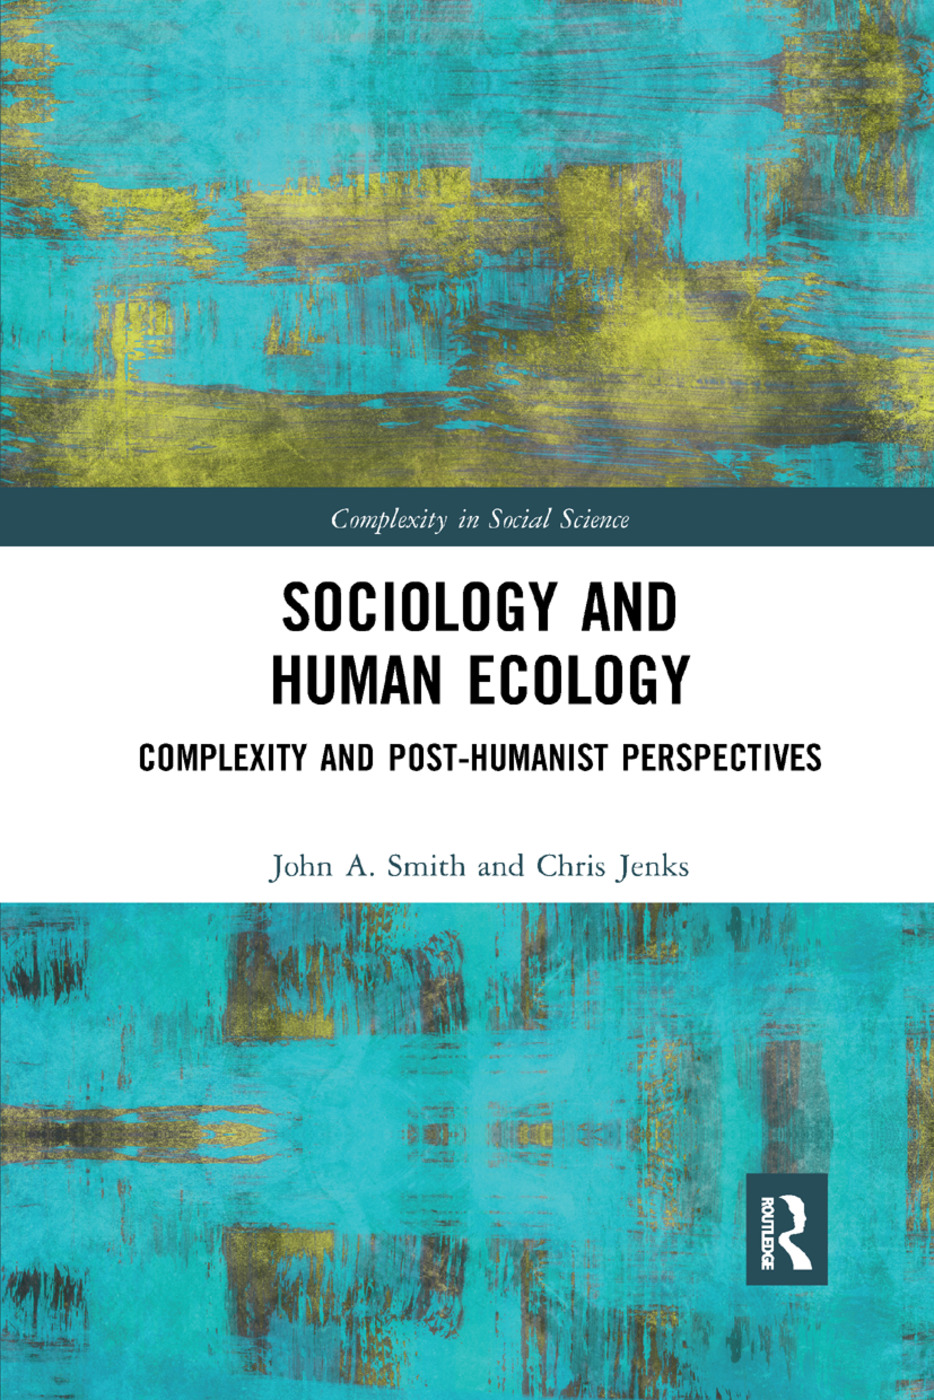 Sociology and Human Ecology: Complexity and Post-Humanist Perspectives book cover